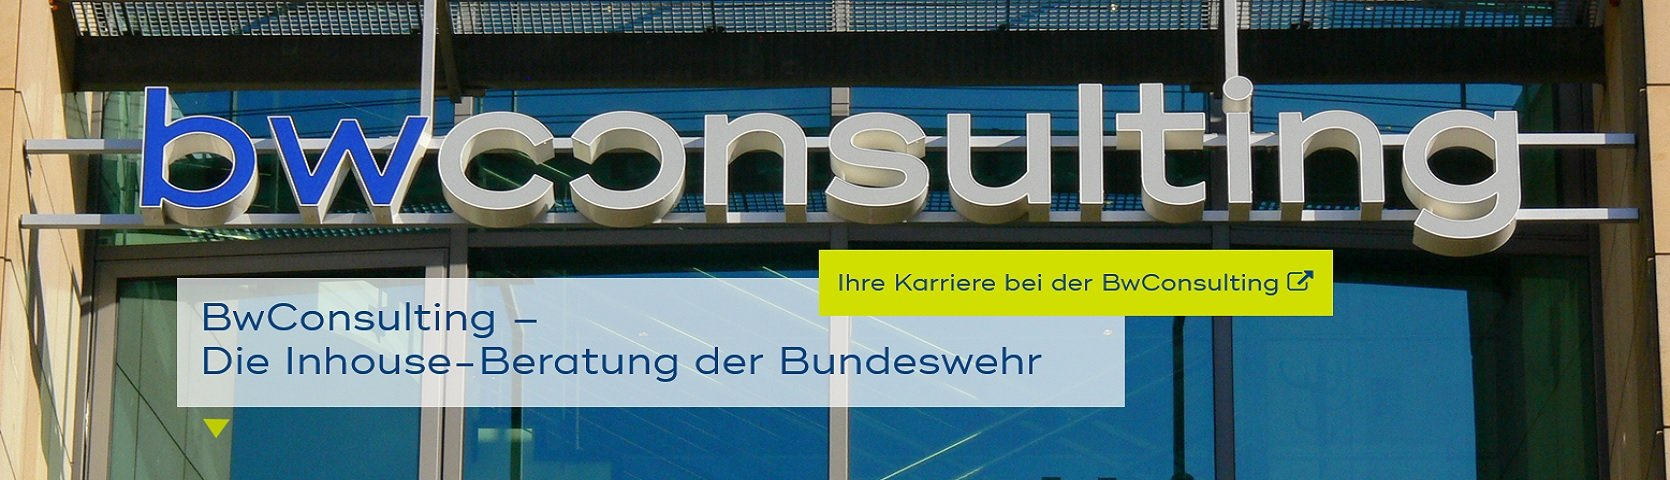 BwConsulting GmbH